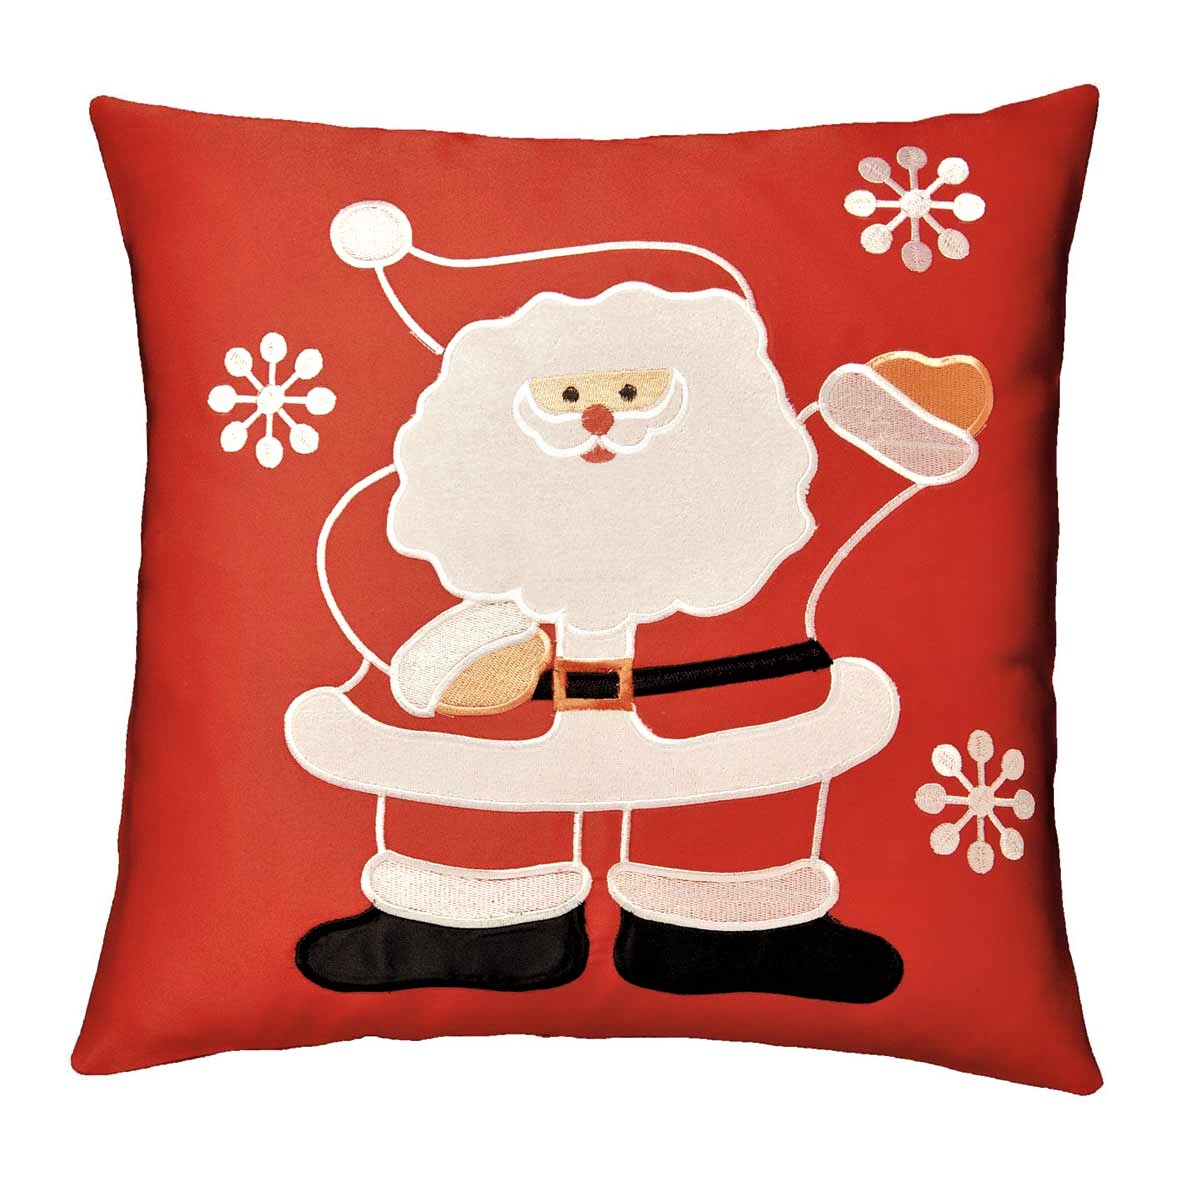 Santa Applique Christmas Cushion Cover Red 42x42cm 16x16 Square